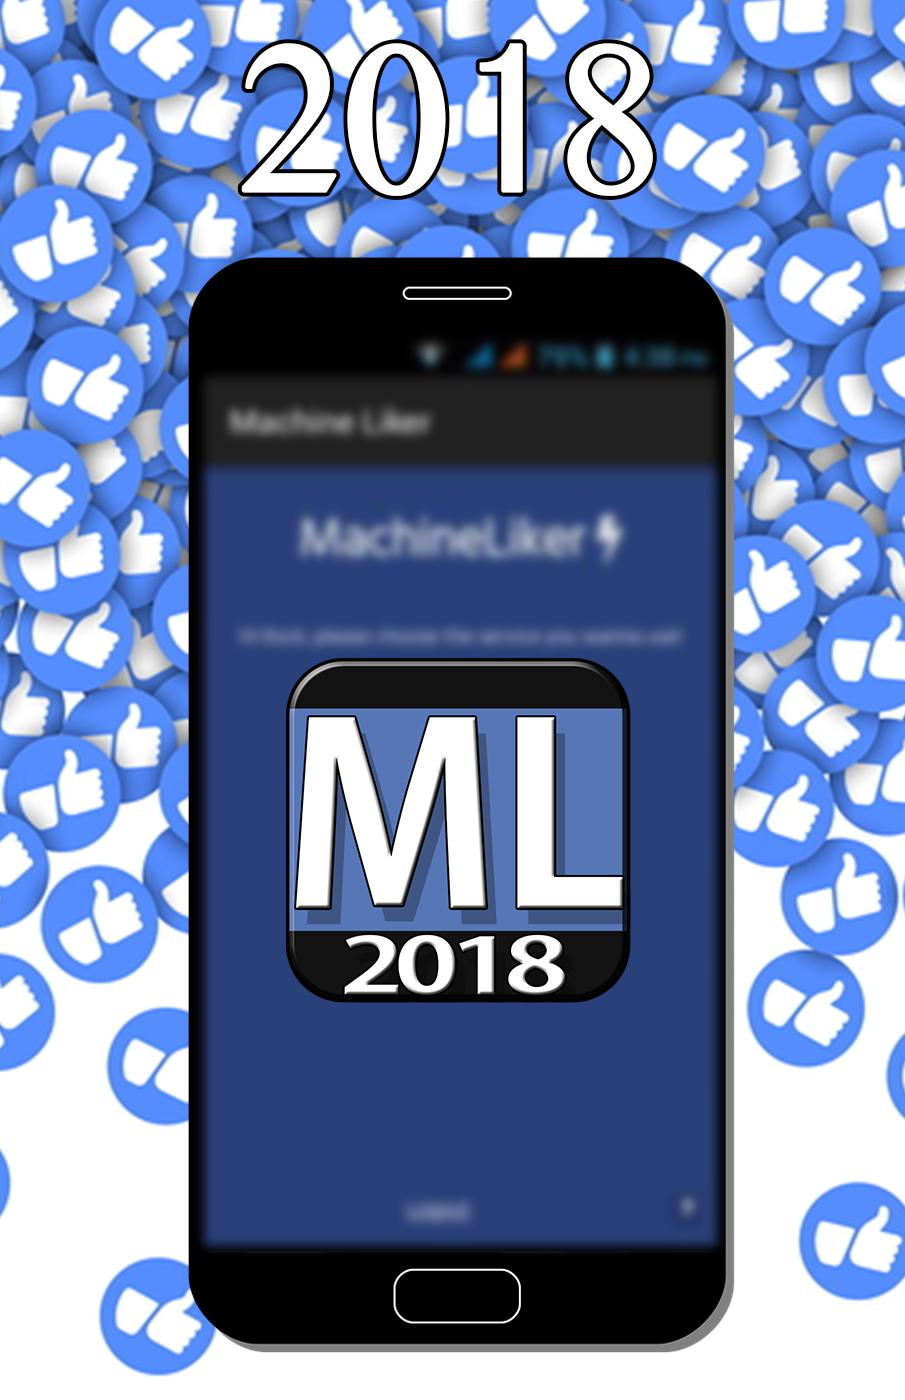 Machine Liker for Android - APK Download